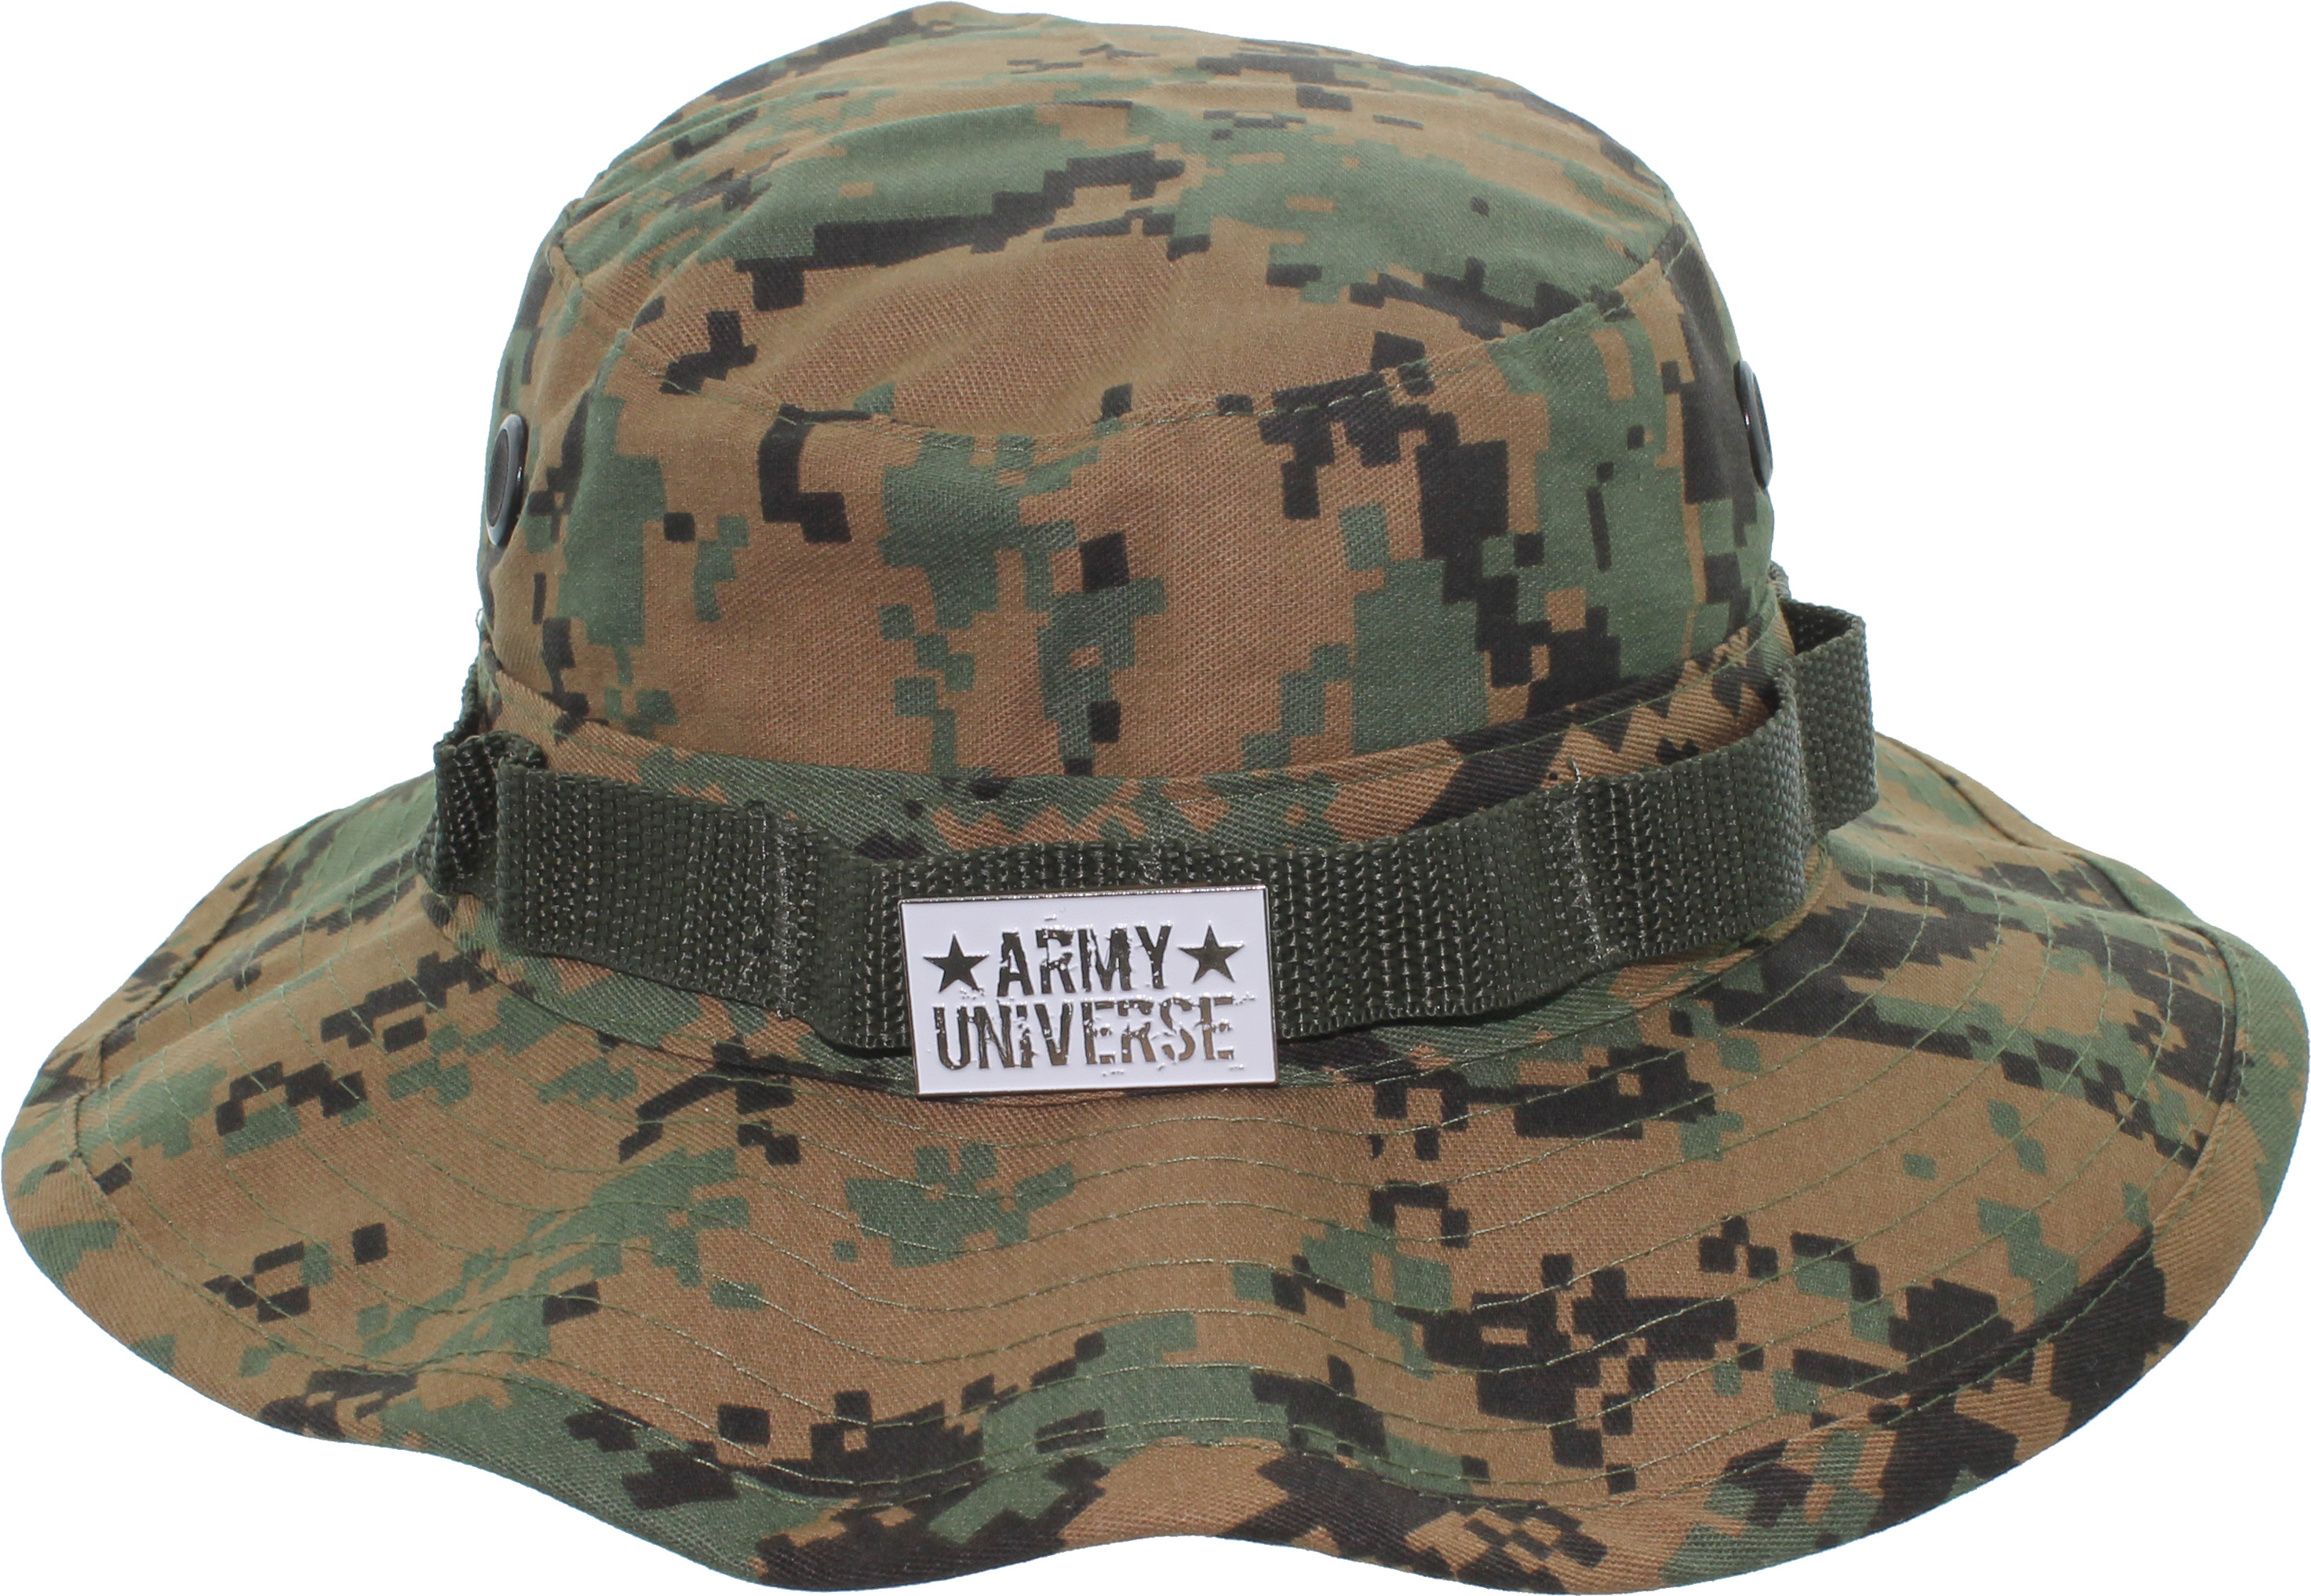 ... Woodland Digital Camouflage Boonie Hat with ARMY UNIVERSE Pin ... 665d6d03ac6